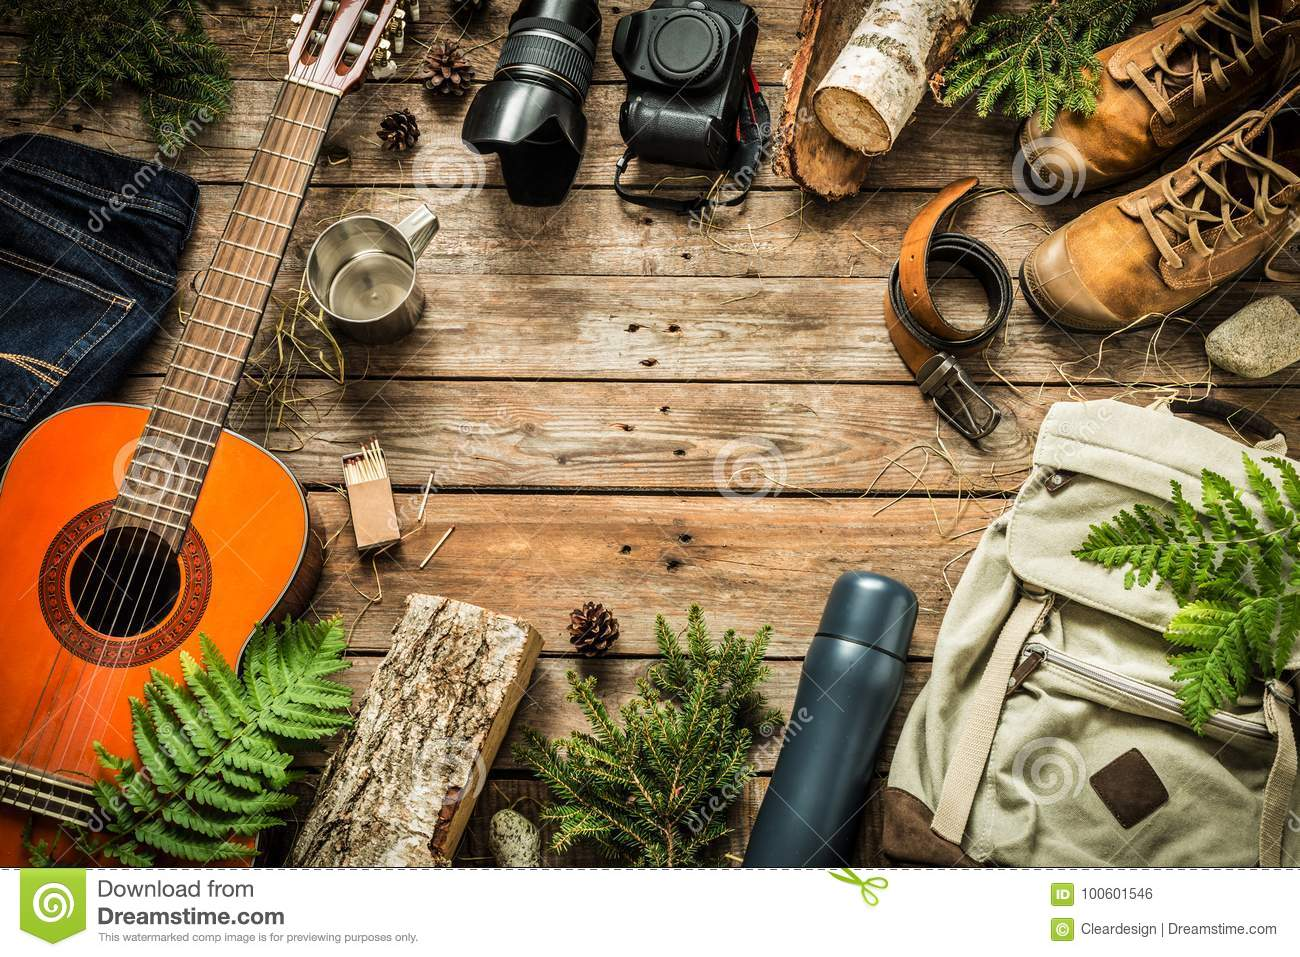 Camping or adventure trip scenery concept top view